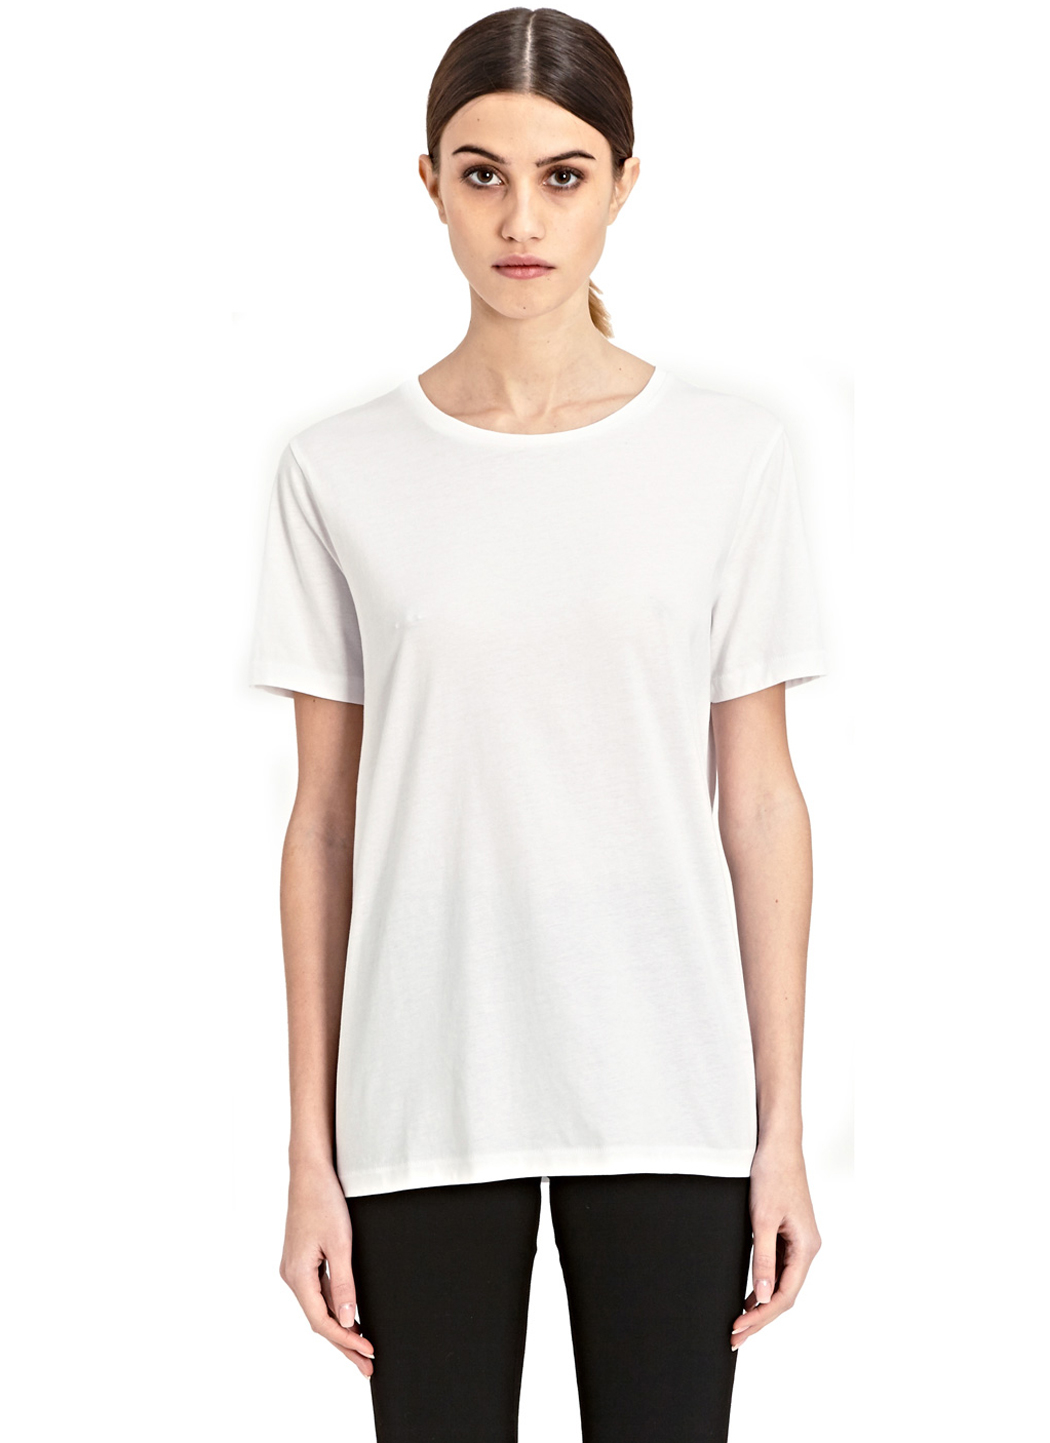 Acne vista crew neck t shirt in white lyst for Crew neck white t shirt